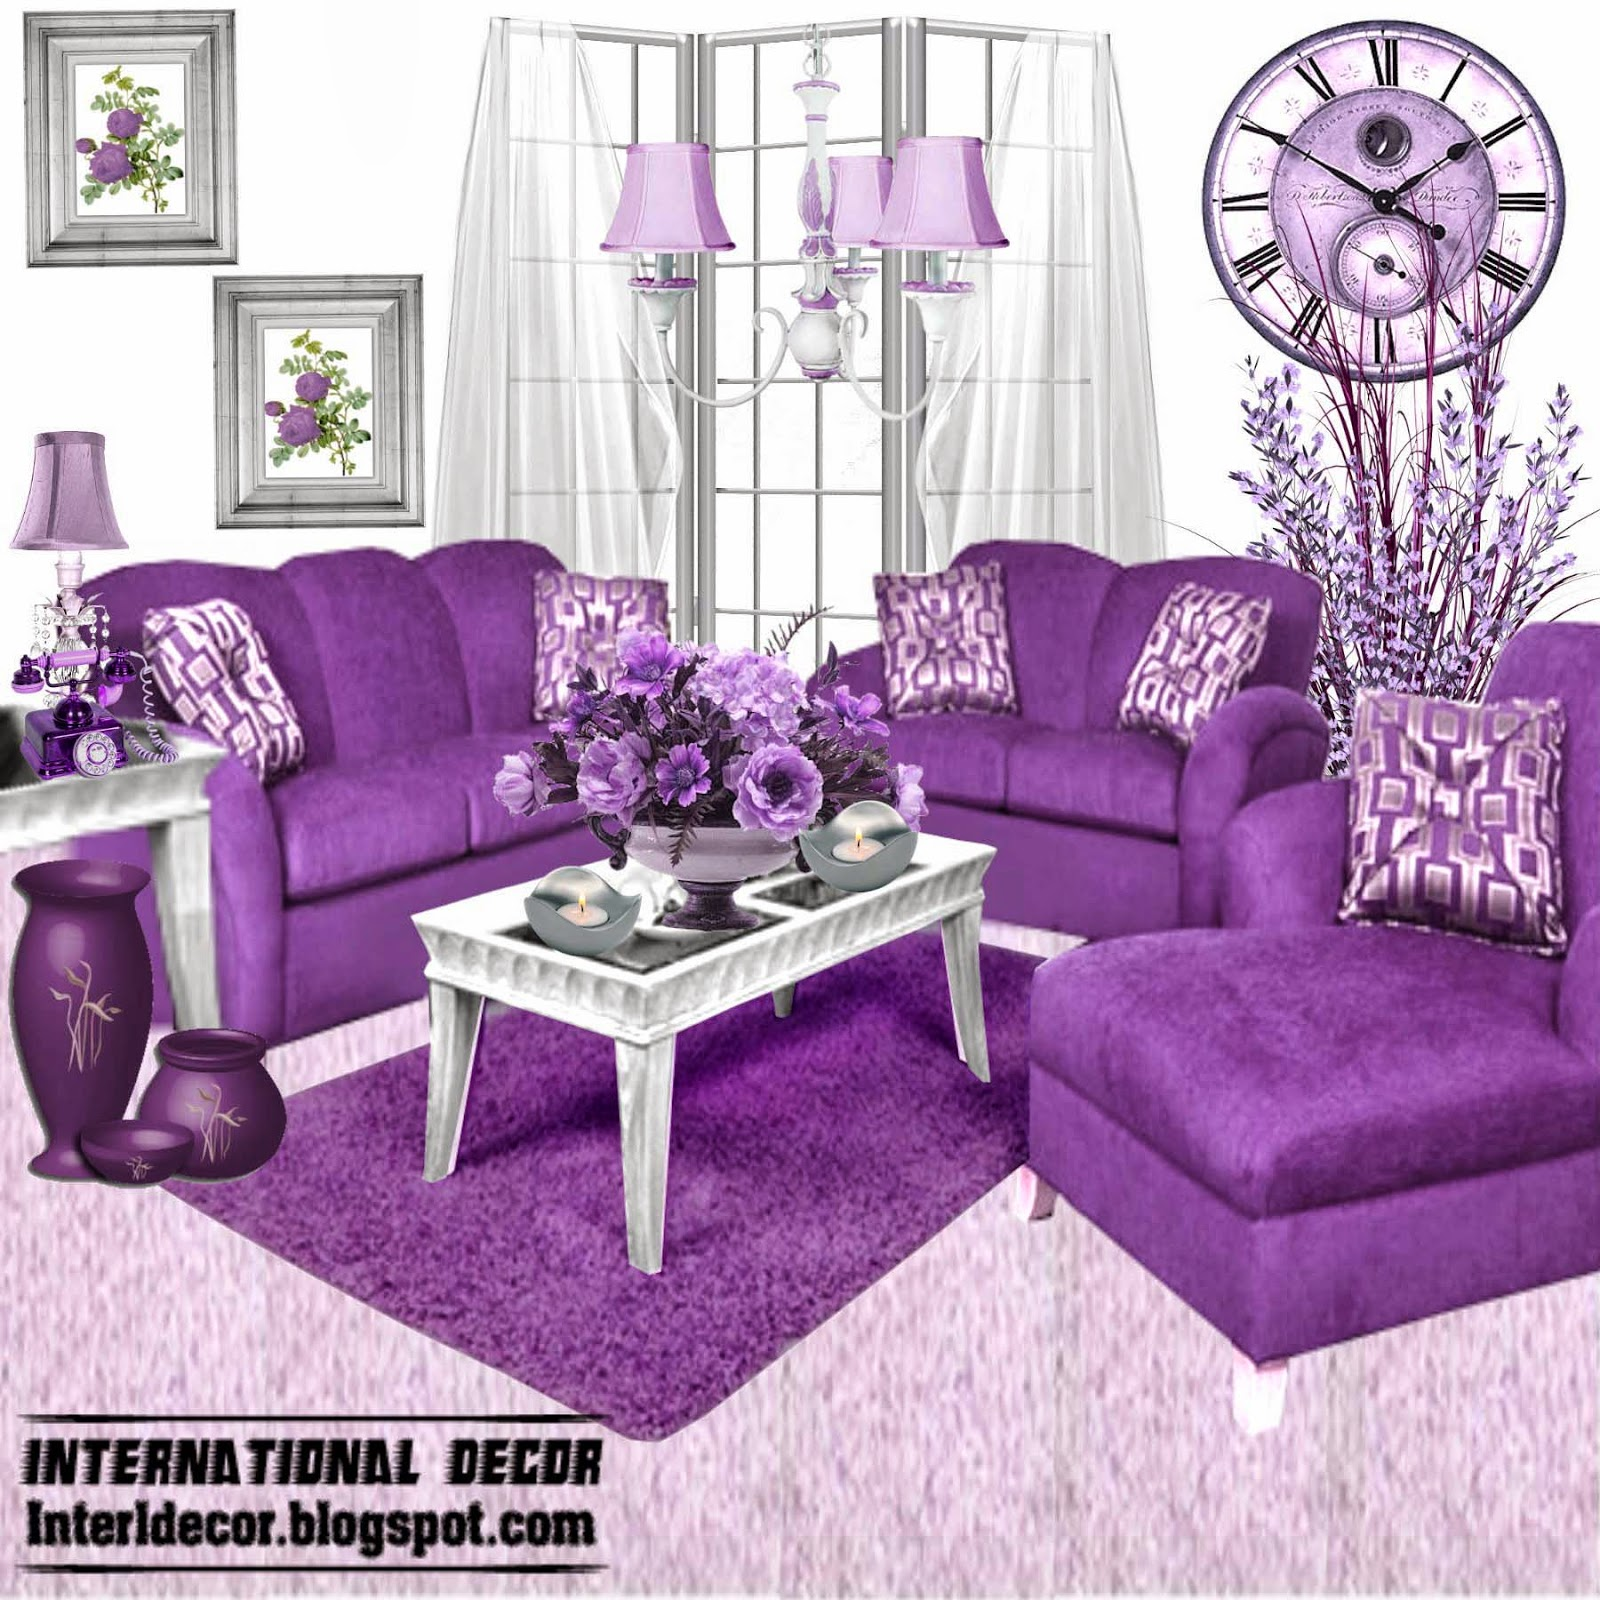 Purple furniture for the home pinterest purple for Living room sofa sets